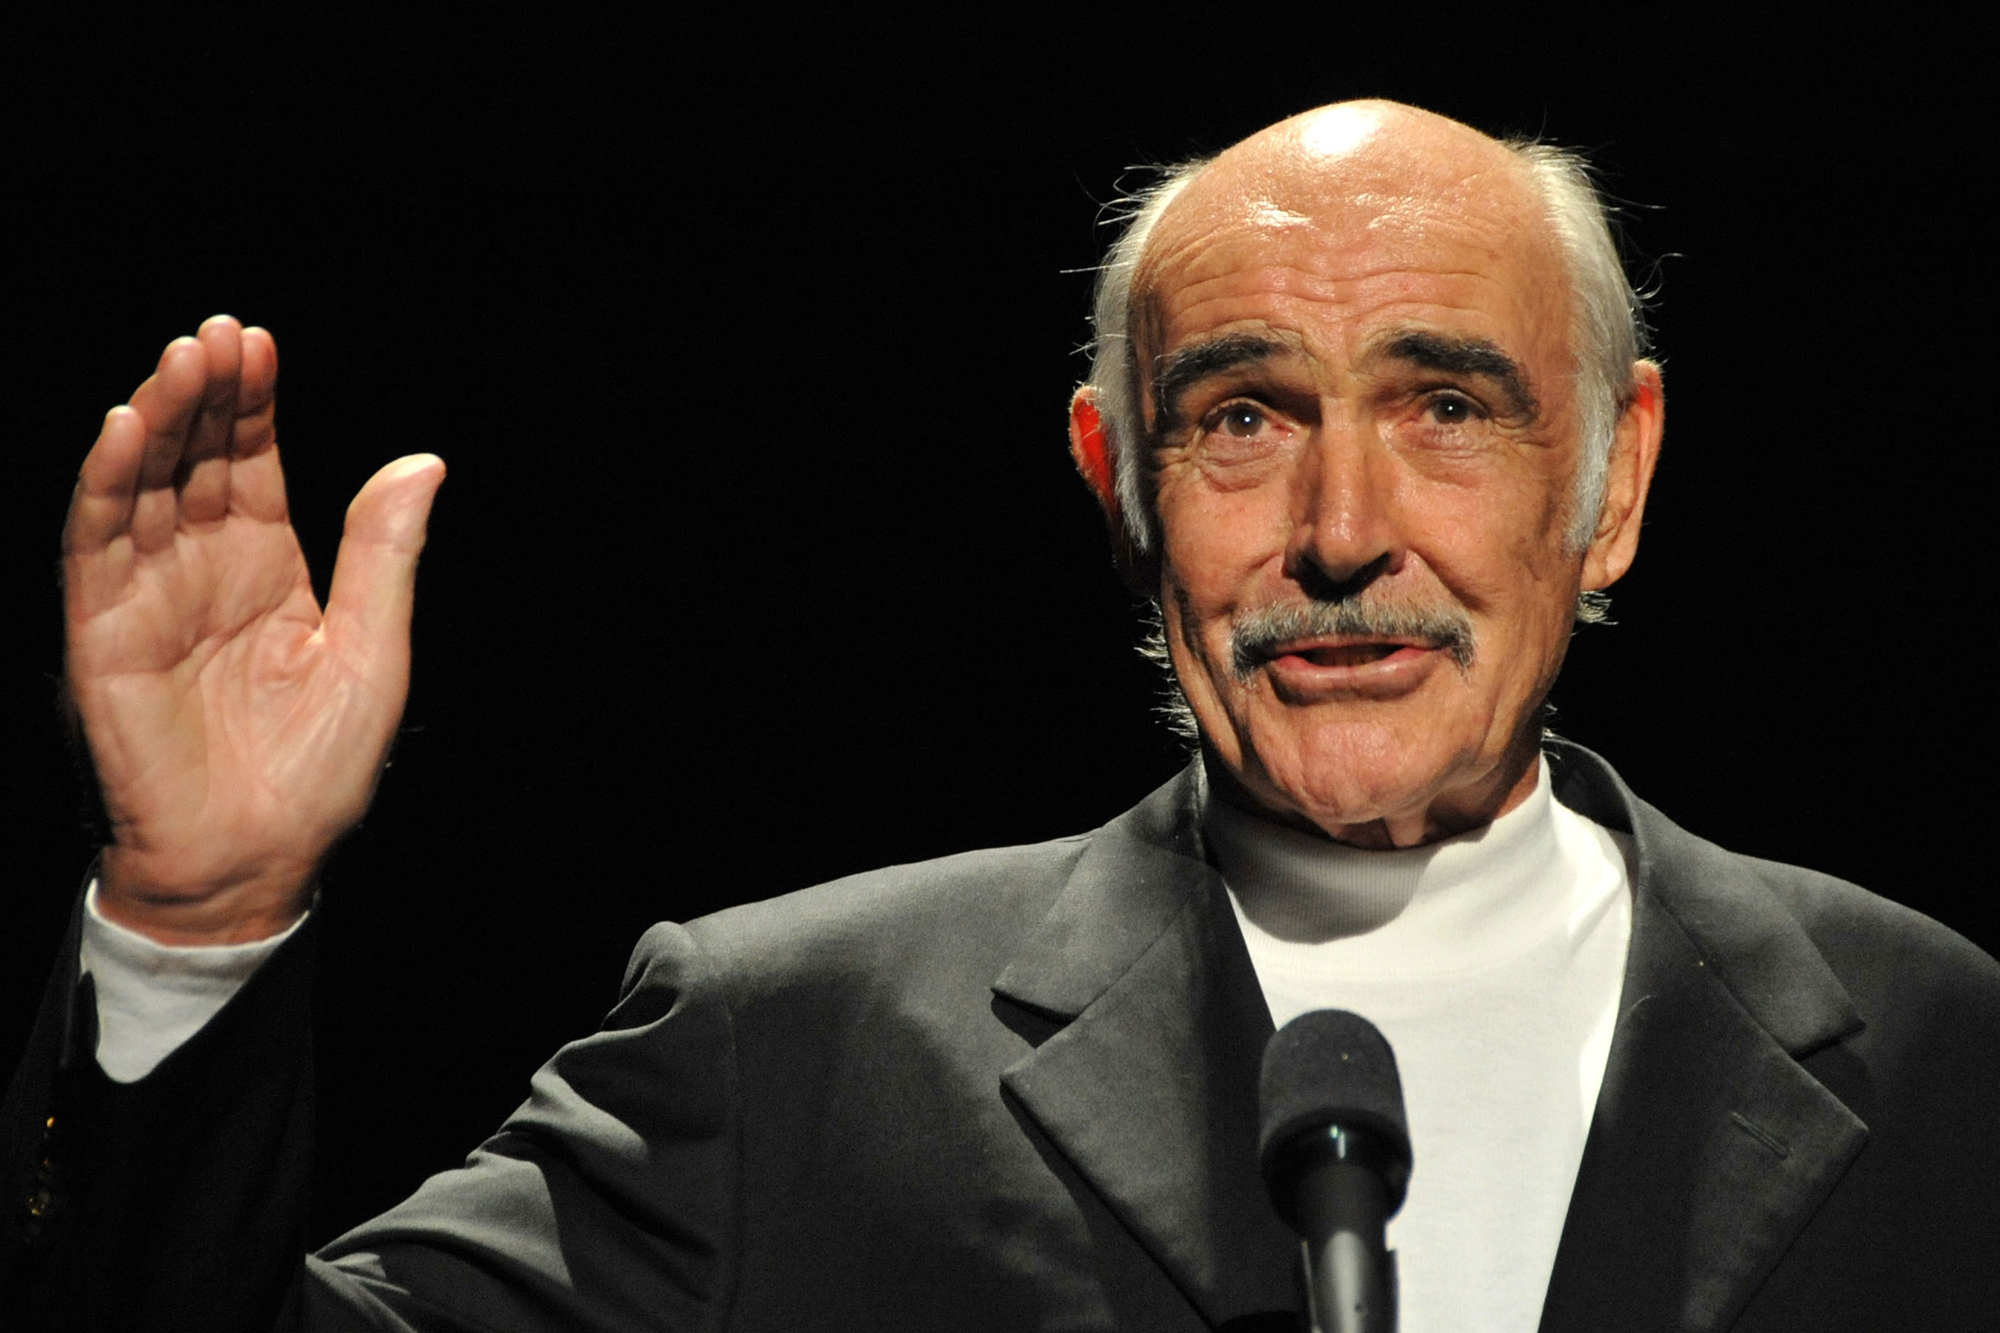 Sean Connery's cause of death listed as pneumonia, heart problems and 'old age'